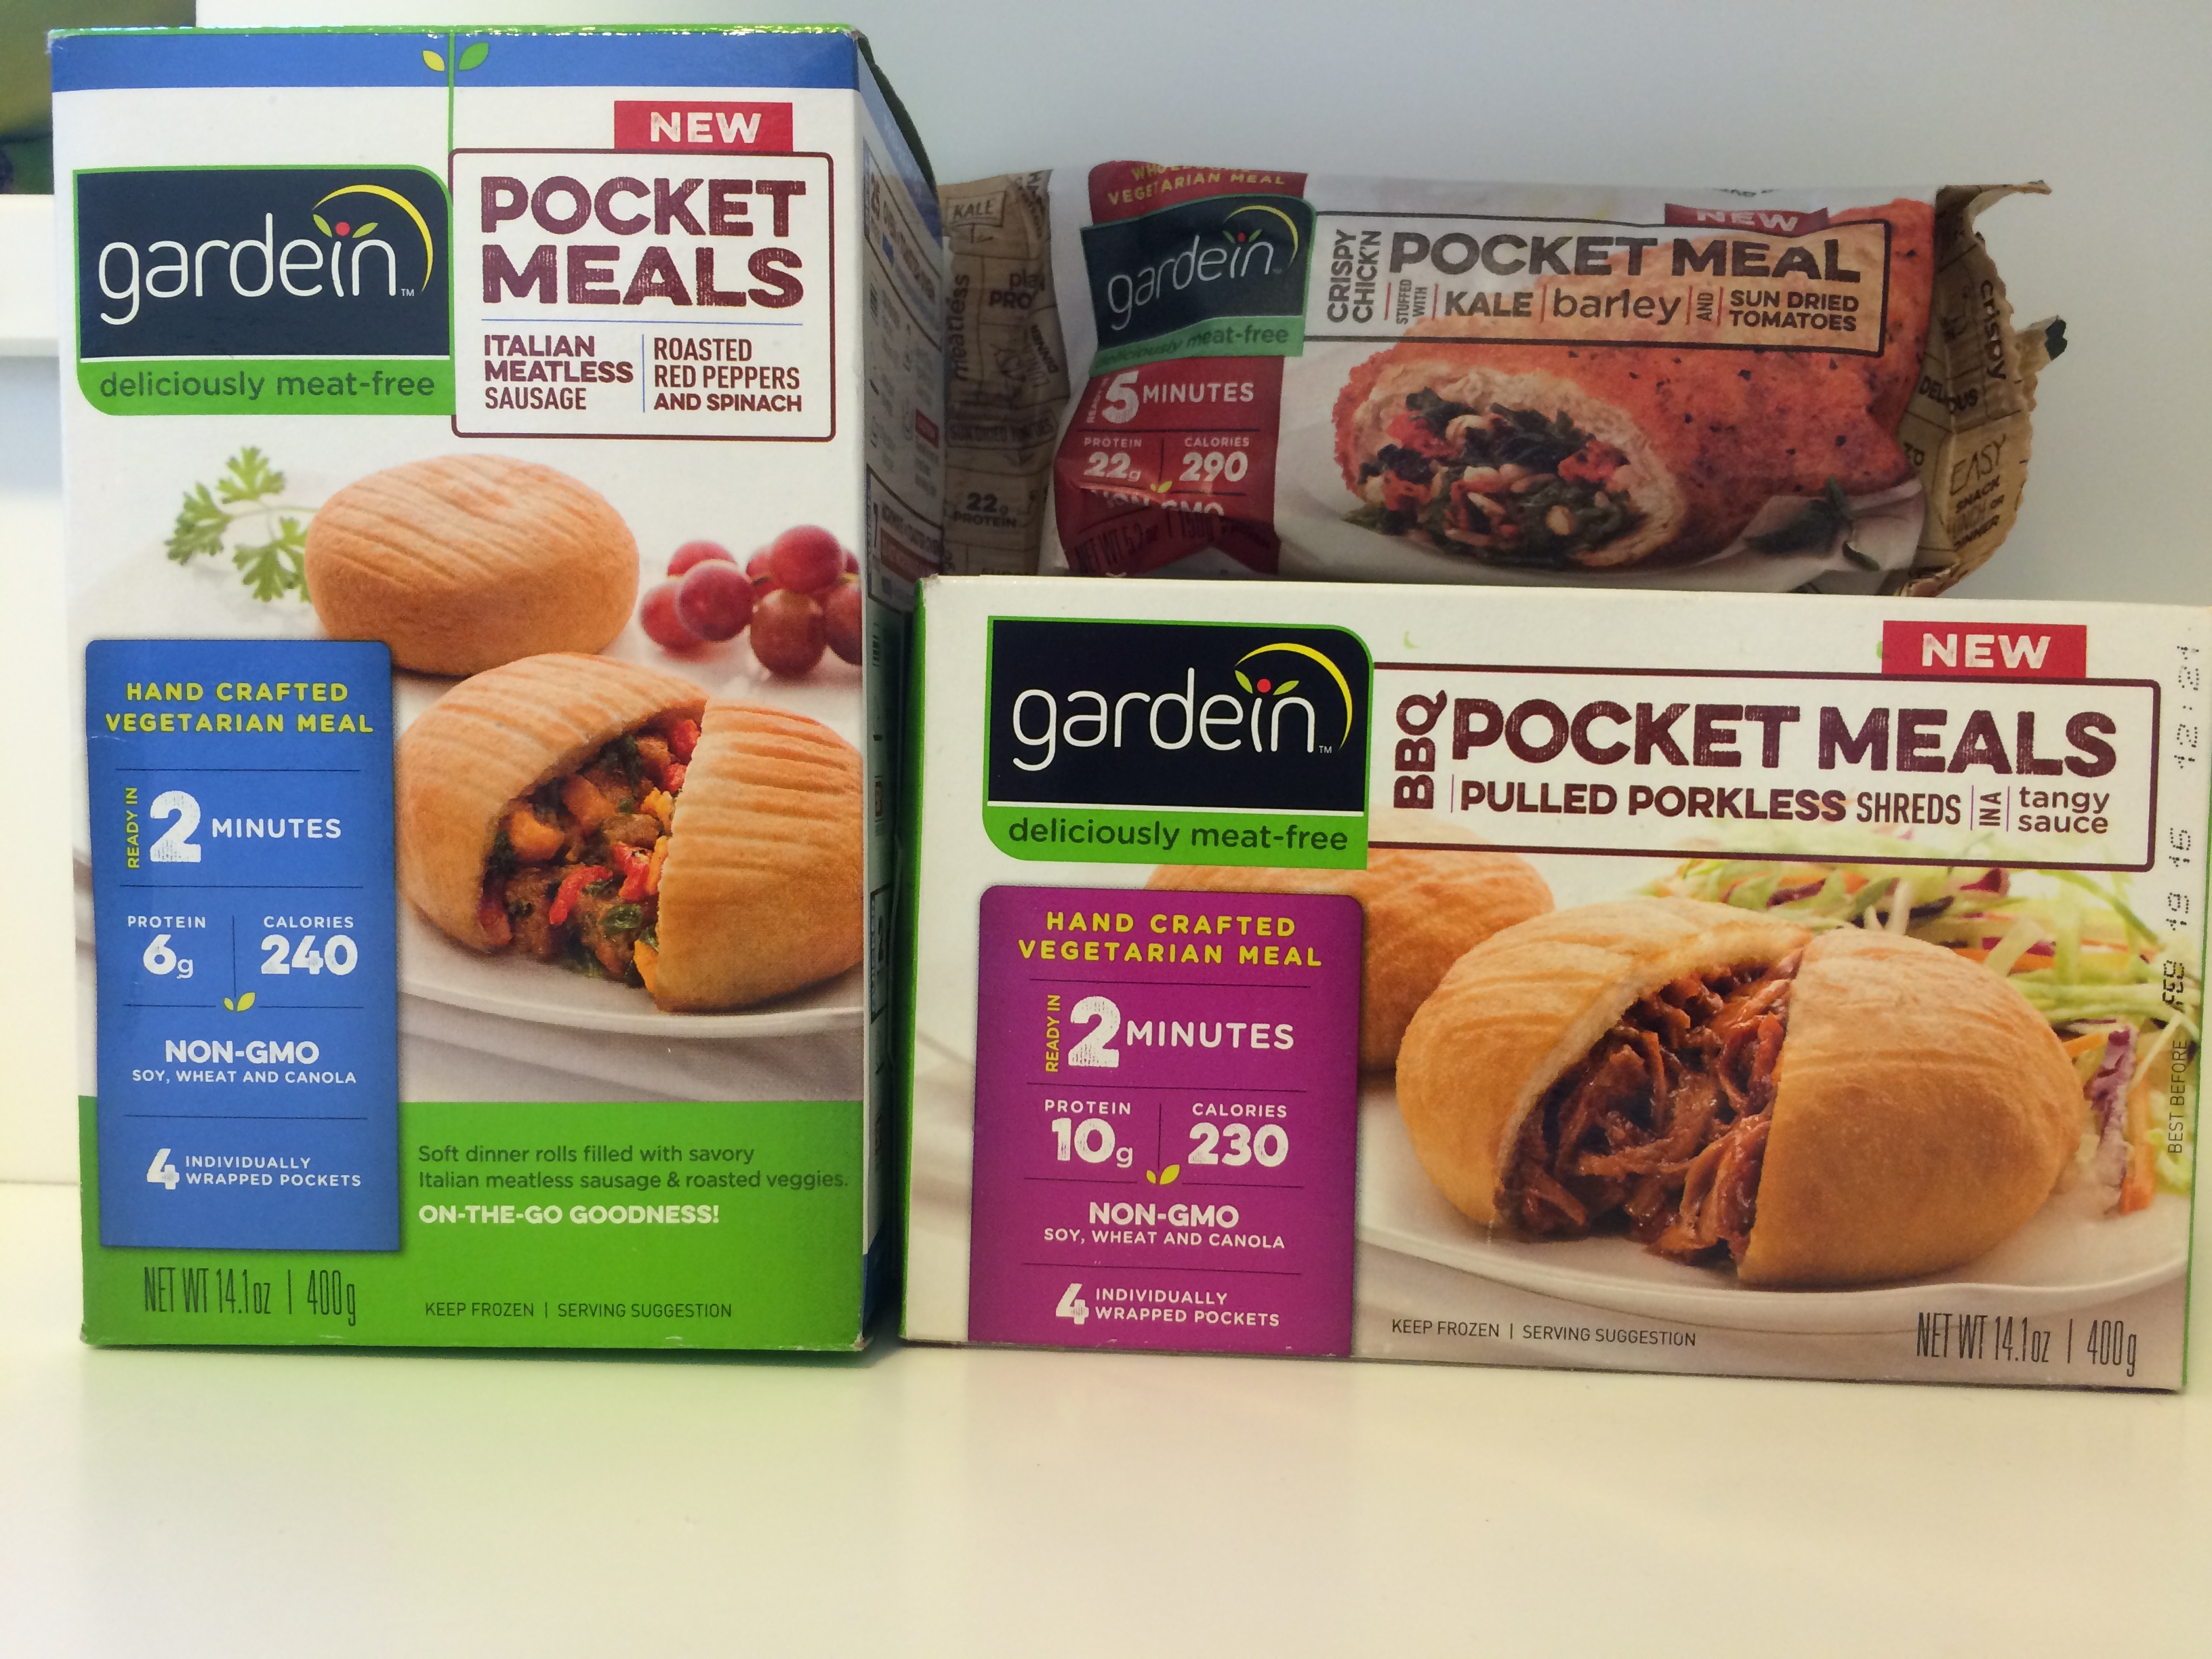 Gardein Pocket Meals